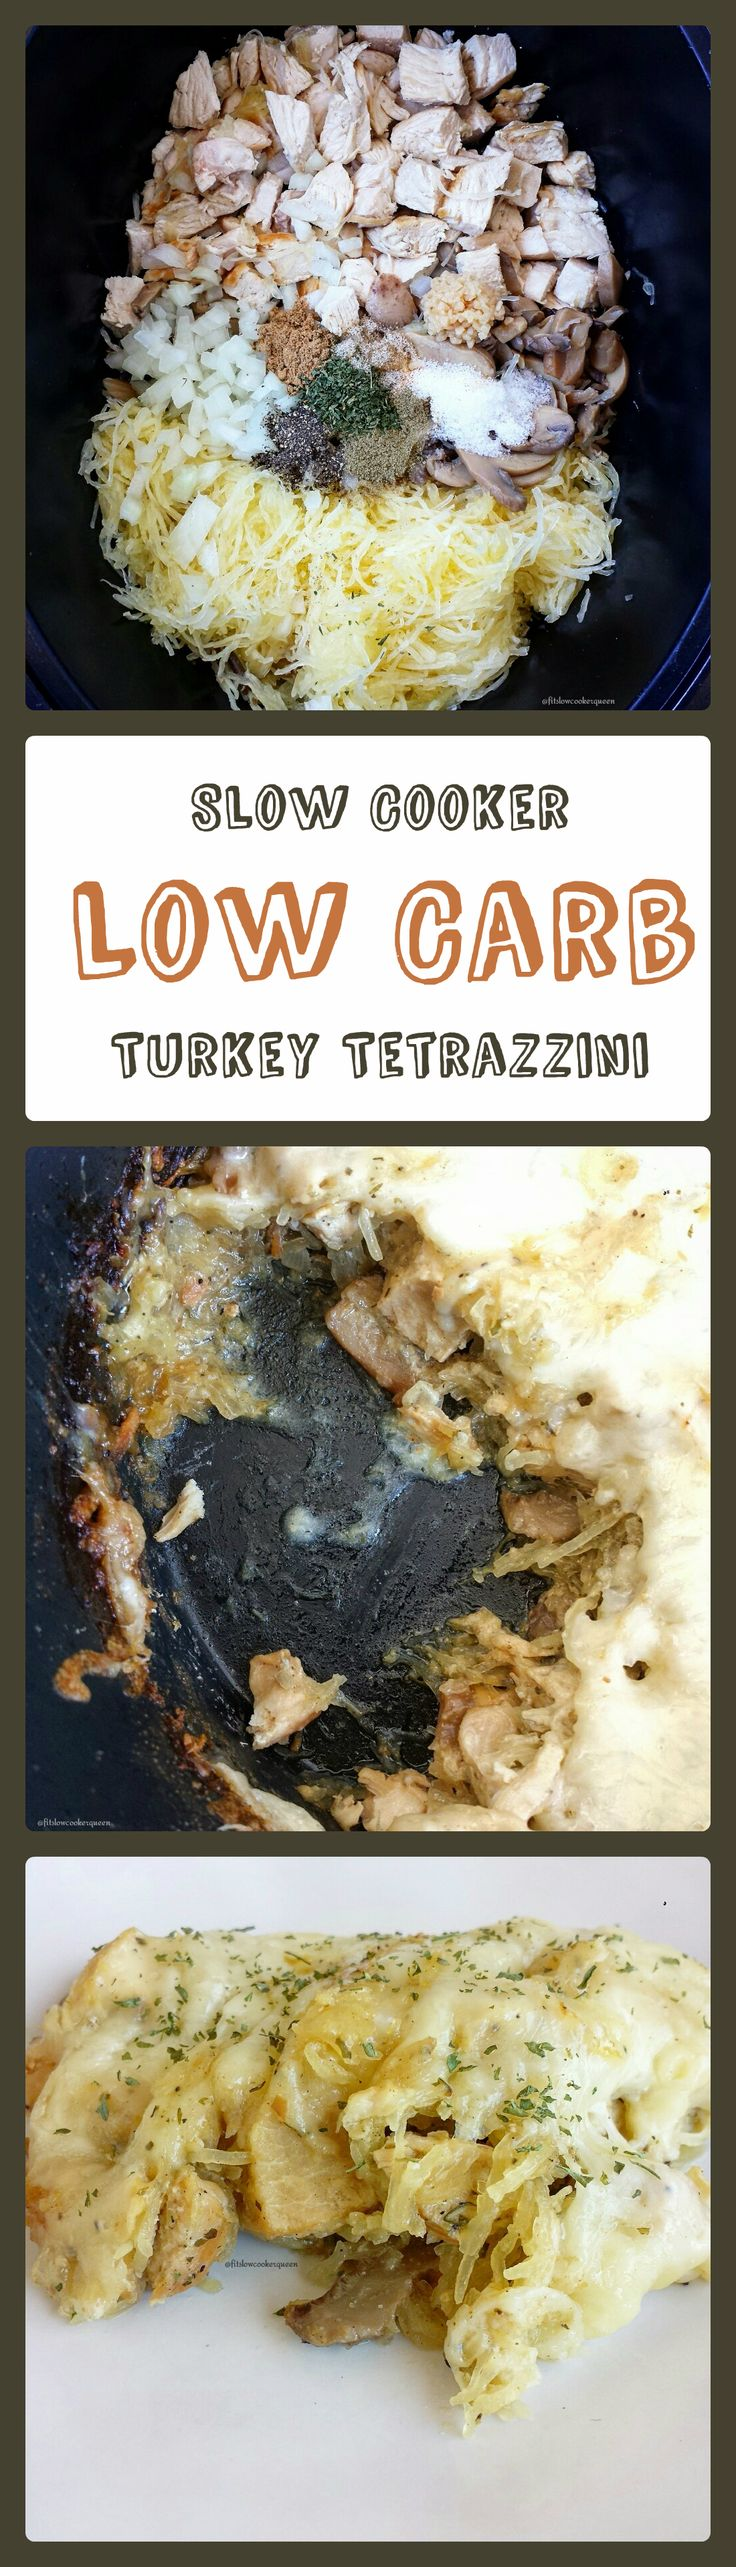 Healthy slow cooker / crockpot recipe -  This slow cooker low carb version of turkey tetrazzini uses spaghetti squash instead of pasta and a light & healthy homemade sauce.